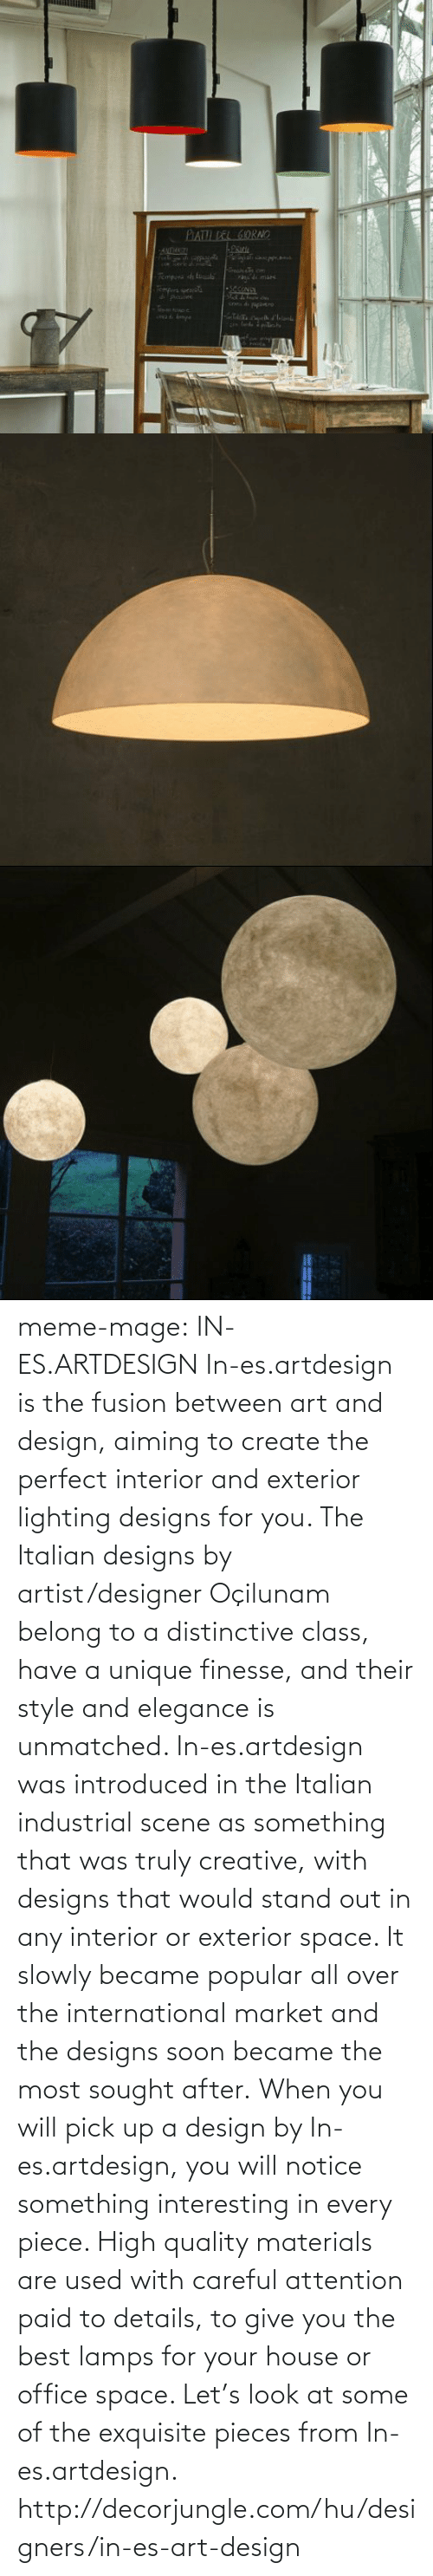 Designers: PIATIL LEL GIORNO  ANDTI  rehat om  dmare  Pmpora di tu  myura penaa  SCCONDI  aedel meme-mage:    IN-ES.ARTDESIGN In-es.artdesign is the fusion between art and design, aiming to create the perfect interior and exterior lighting designs for you. The Italian designs by artist/designer Oçilunam belong to a distinctive class, have a unique finesse, and their style and elegance is unmatched. In-es.artdesign was introduced in the Italian industrial scene as something that was truly creative, with designs that would stand out in any interior or exterior space. It slowly became popular all over the international market and the designs soon became the most sought after. When you will pick up a design by In-es.artdesign, you will notice something interesting in every piece. High quality materials are used with careful attention paid to details, to give you the best lamps for your house or office space. Let's look at some of the exquisite pieces from In-es.artdesign. http://decorjungle.com/hu/designers/in-es-art-design